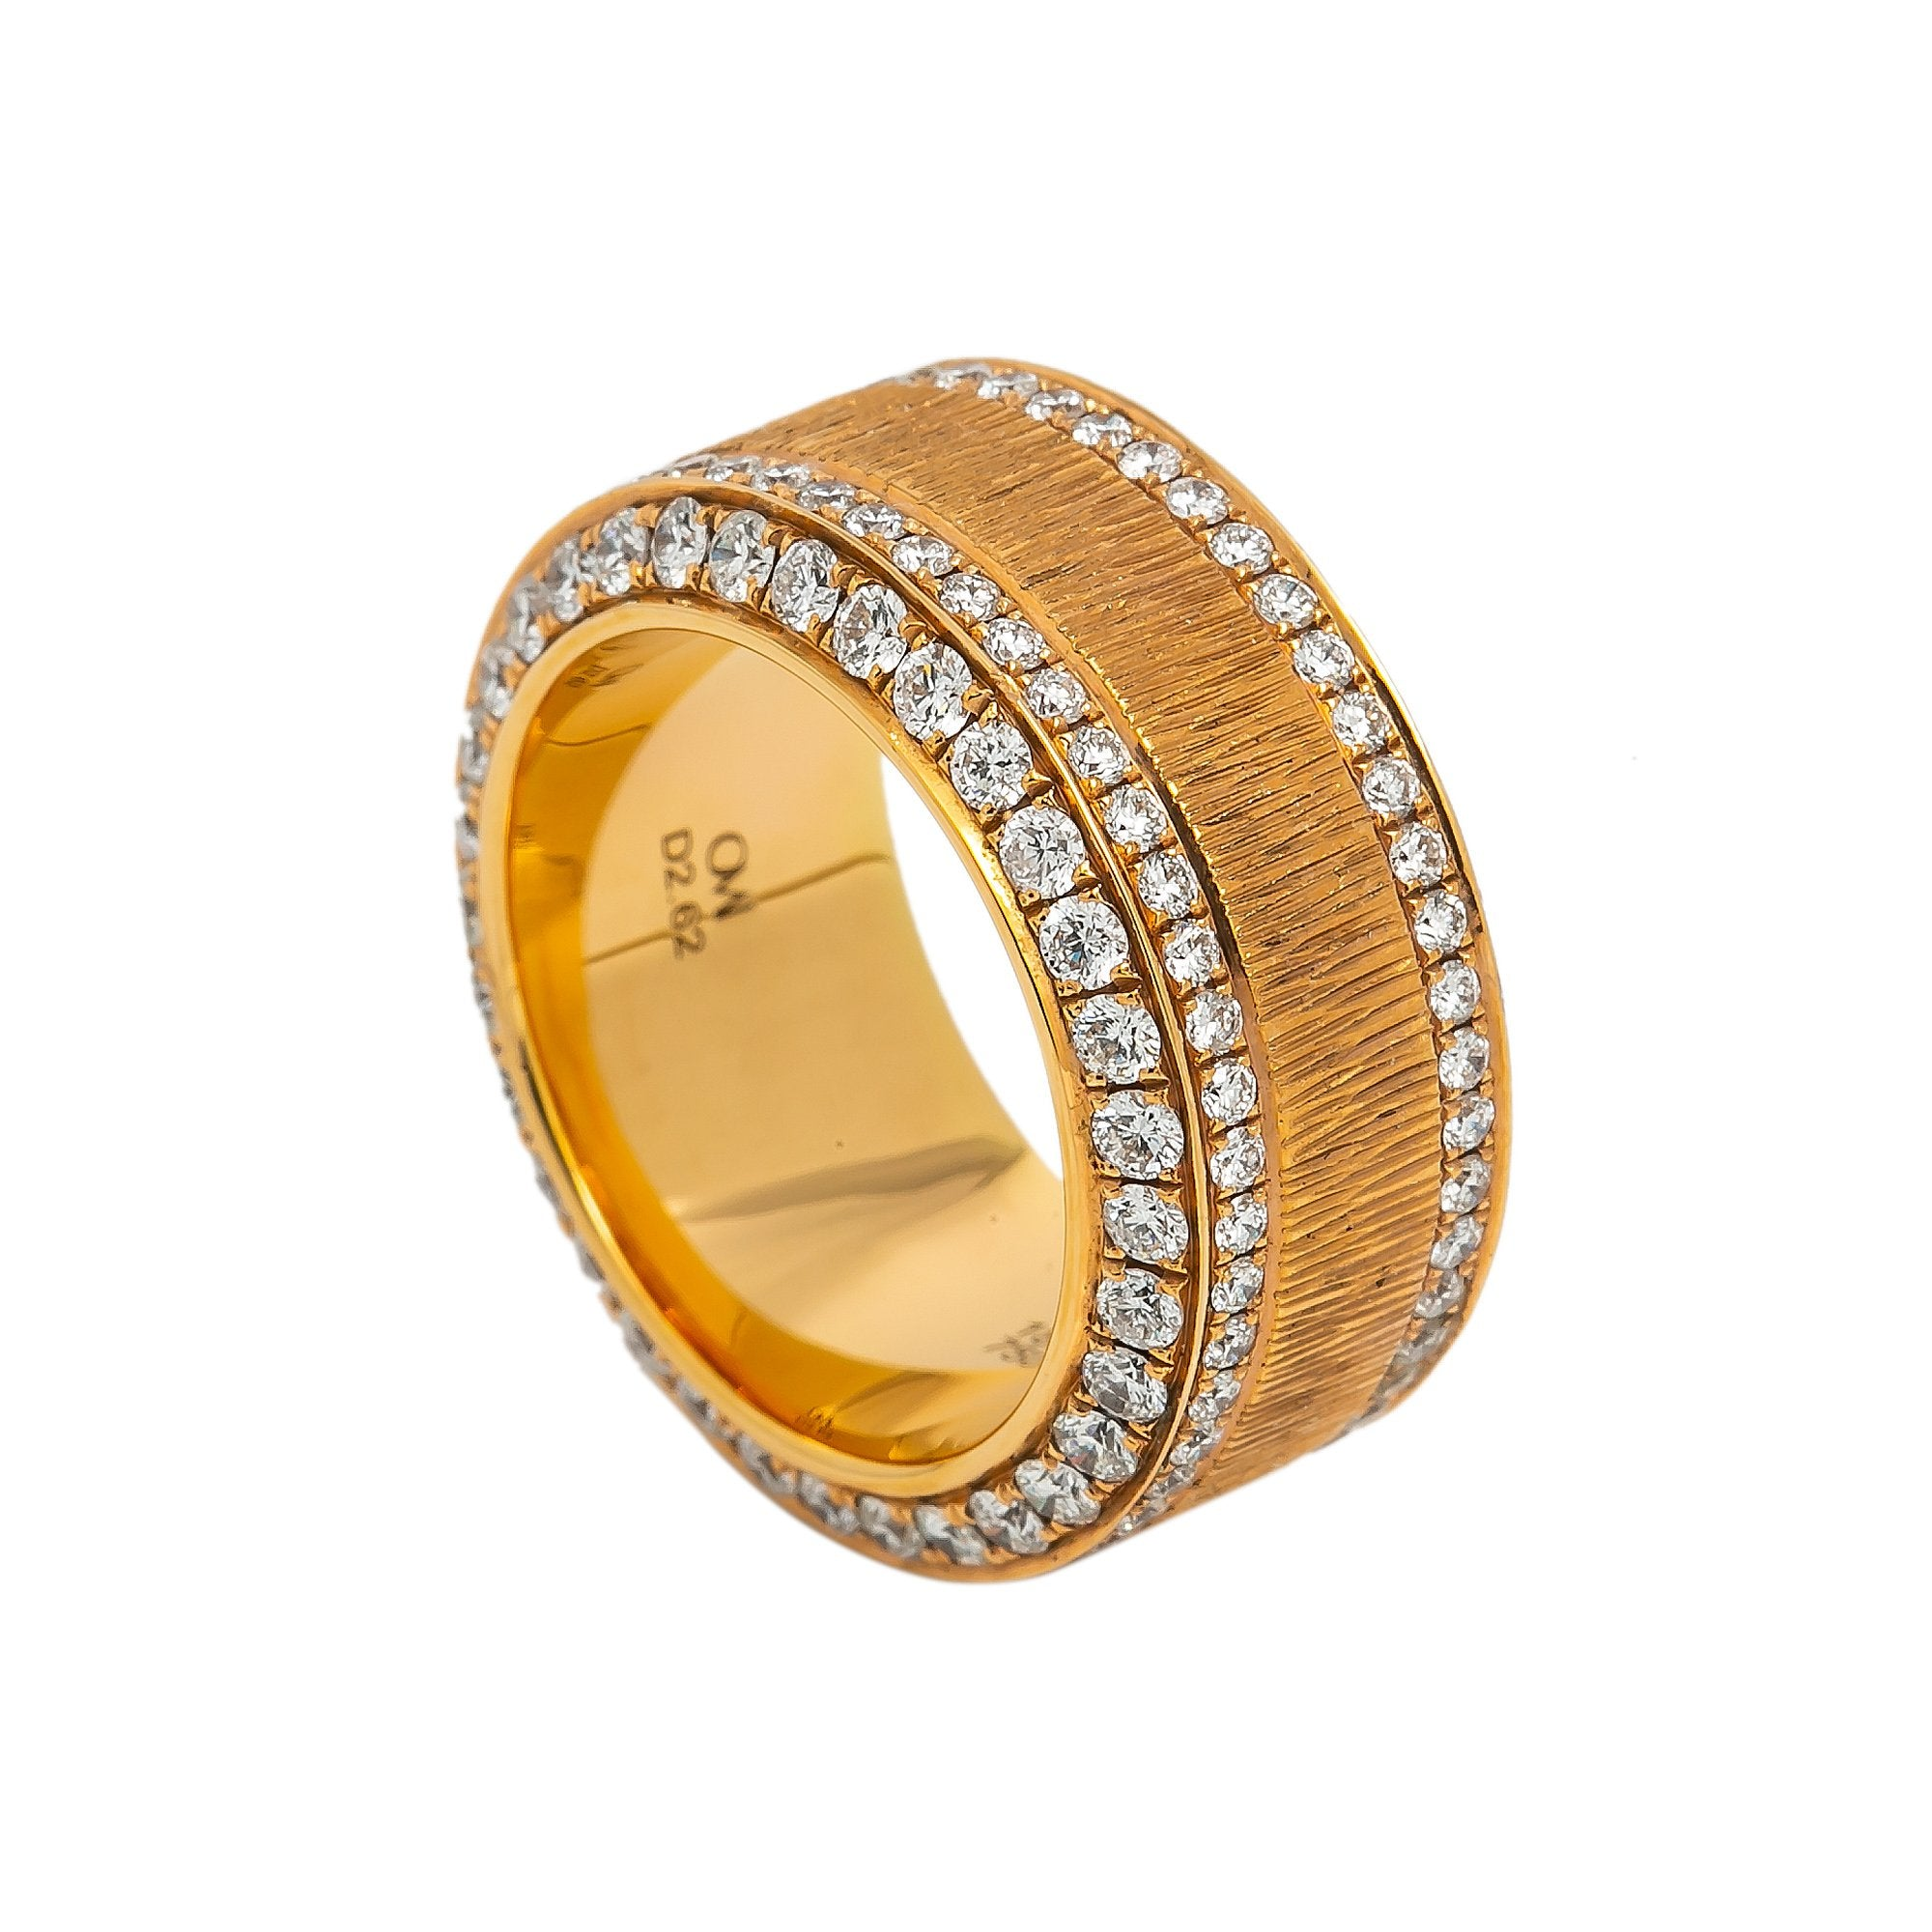 LADIES 18K YELLOW GOLD HAND RING WITH 2.62 CT DIAMONDS